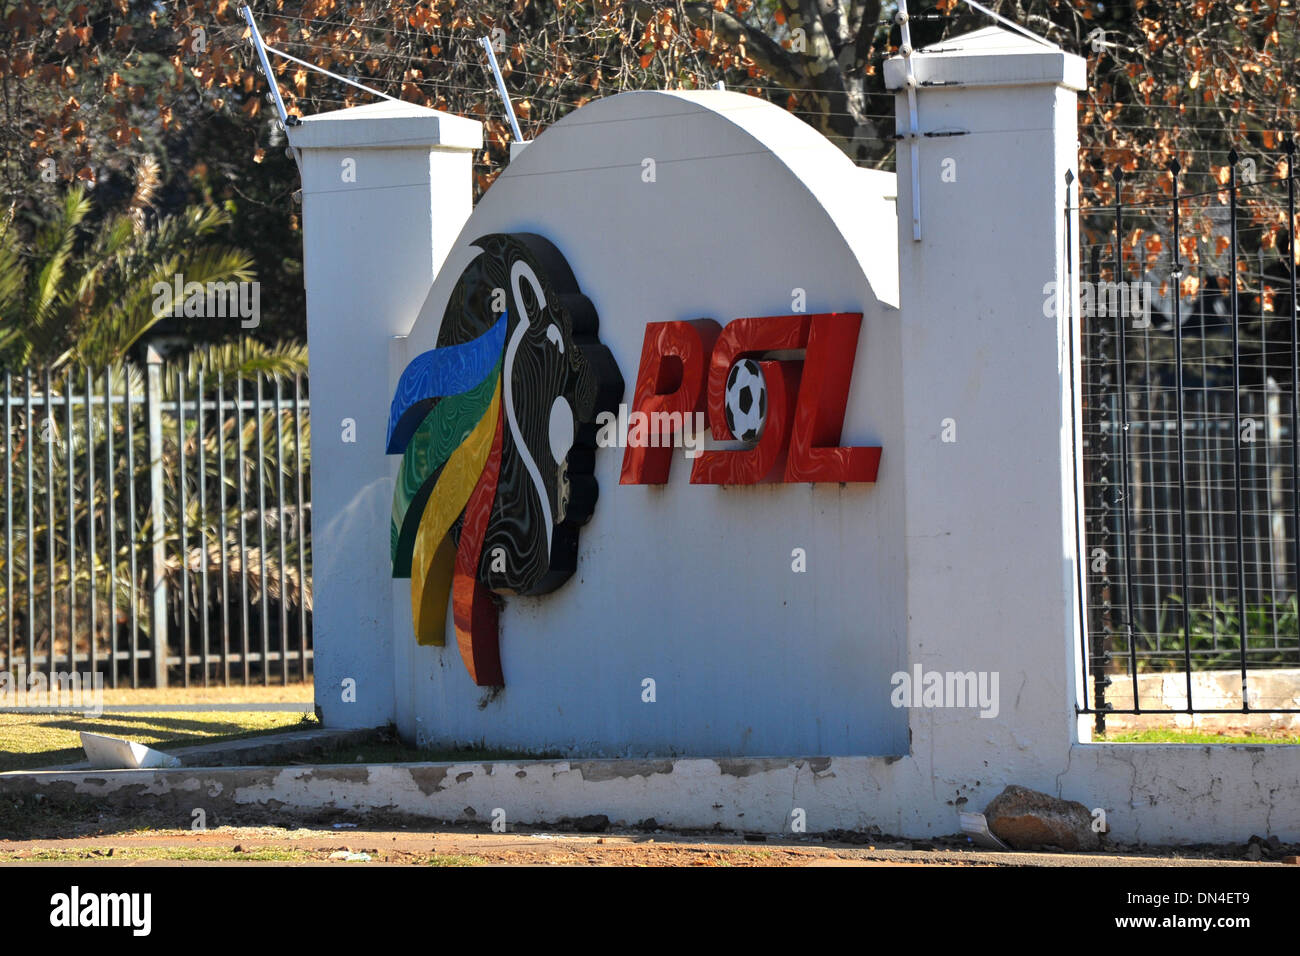 A PSL sign in Johannesburg, South Africa. - Stock Image